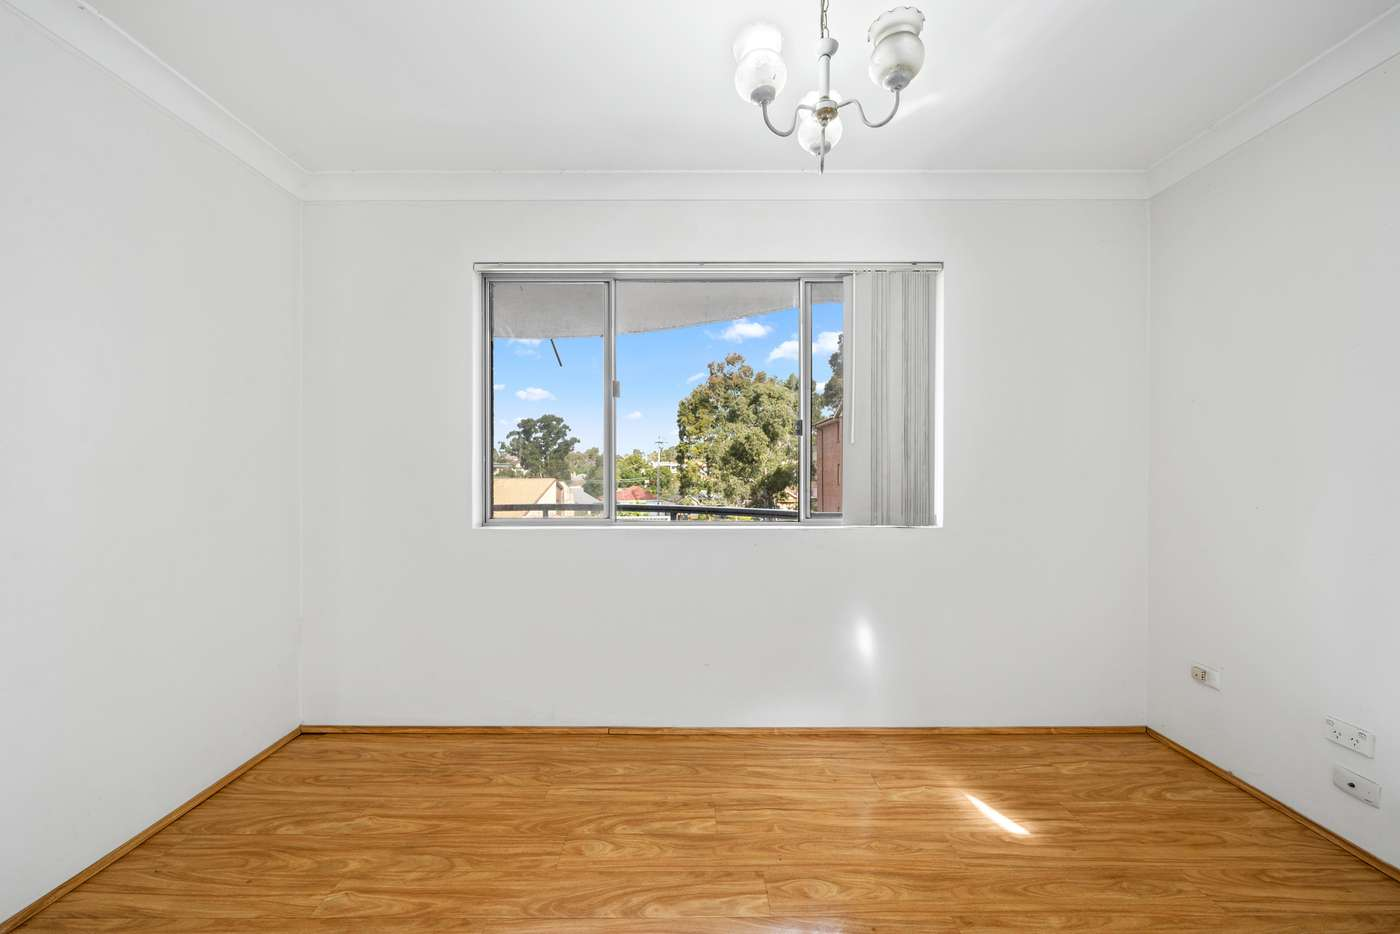 Fifth view of Homely apartment listing, 9/21 Early Street, Parramatta NSW 2150